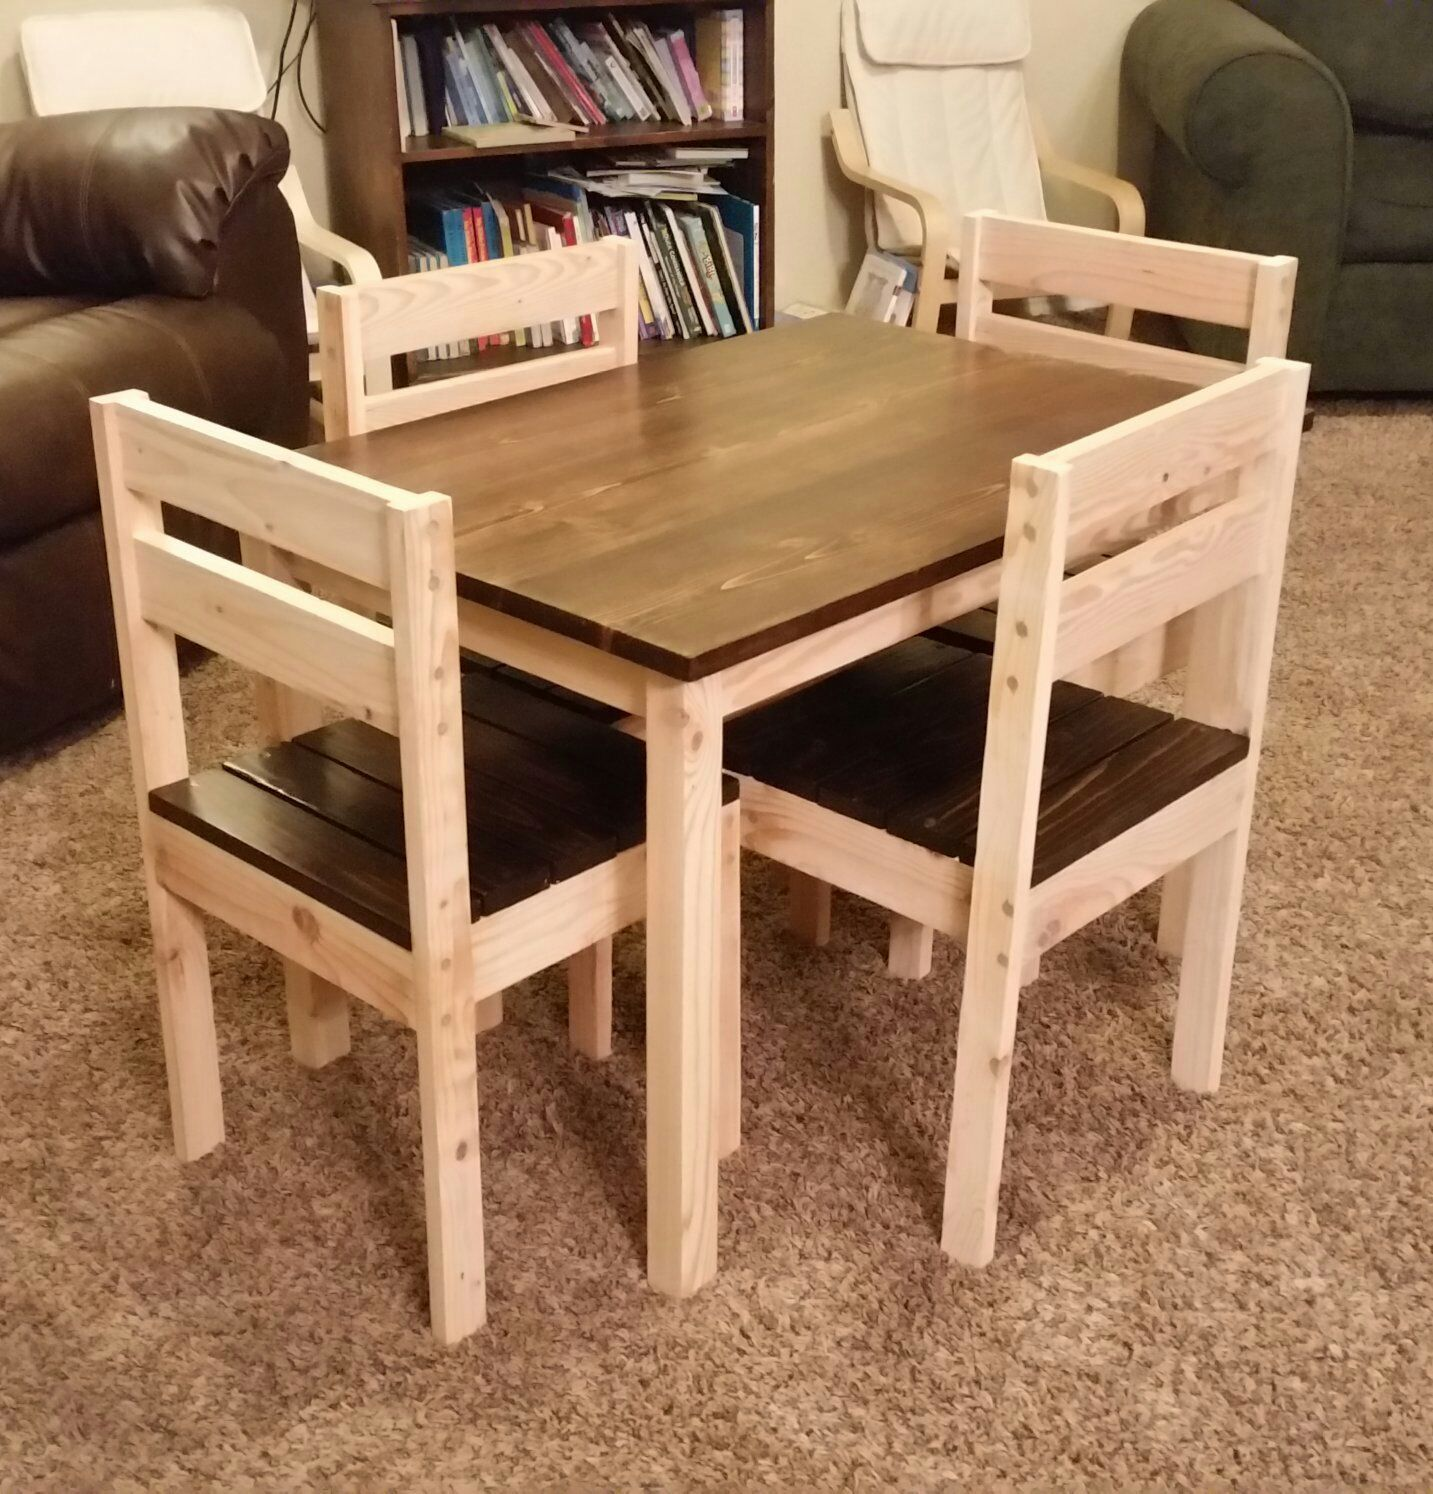 Delicieux Kids Table And Chairs | Do It Yourself Home Projects From Ana White More